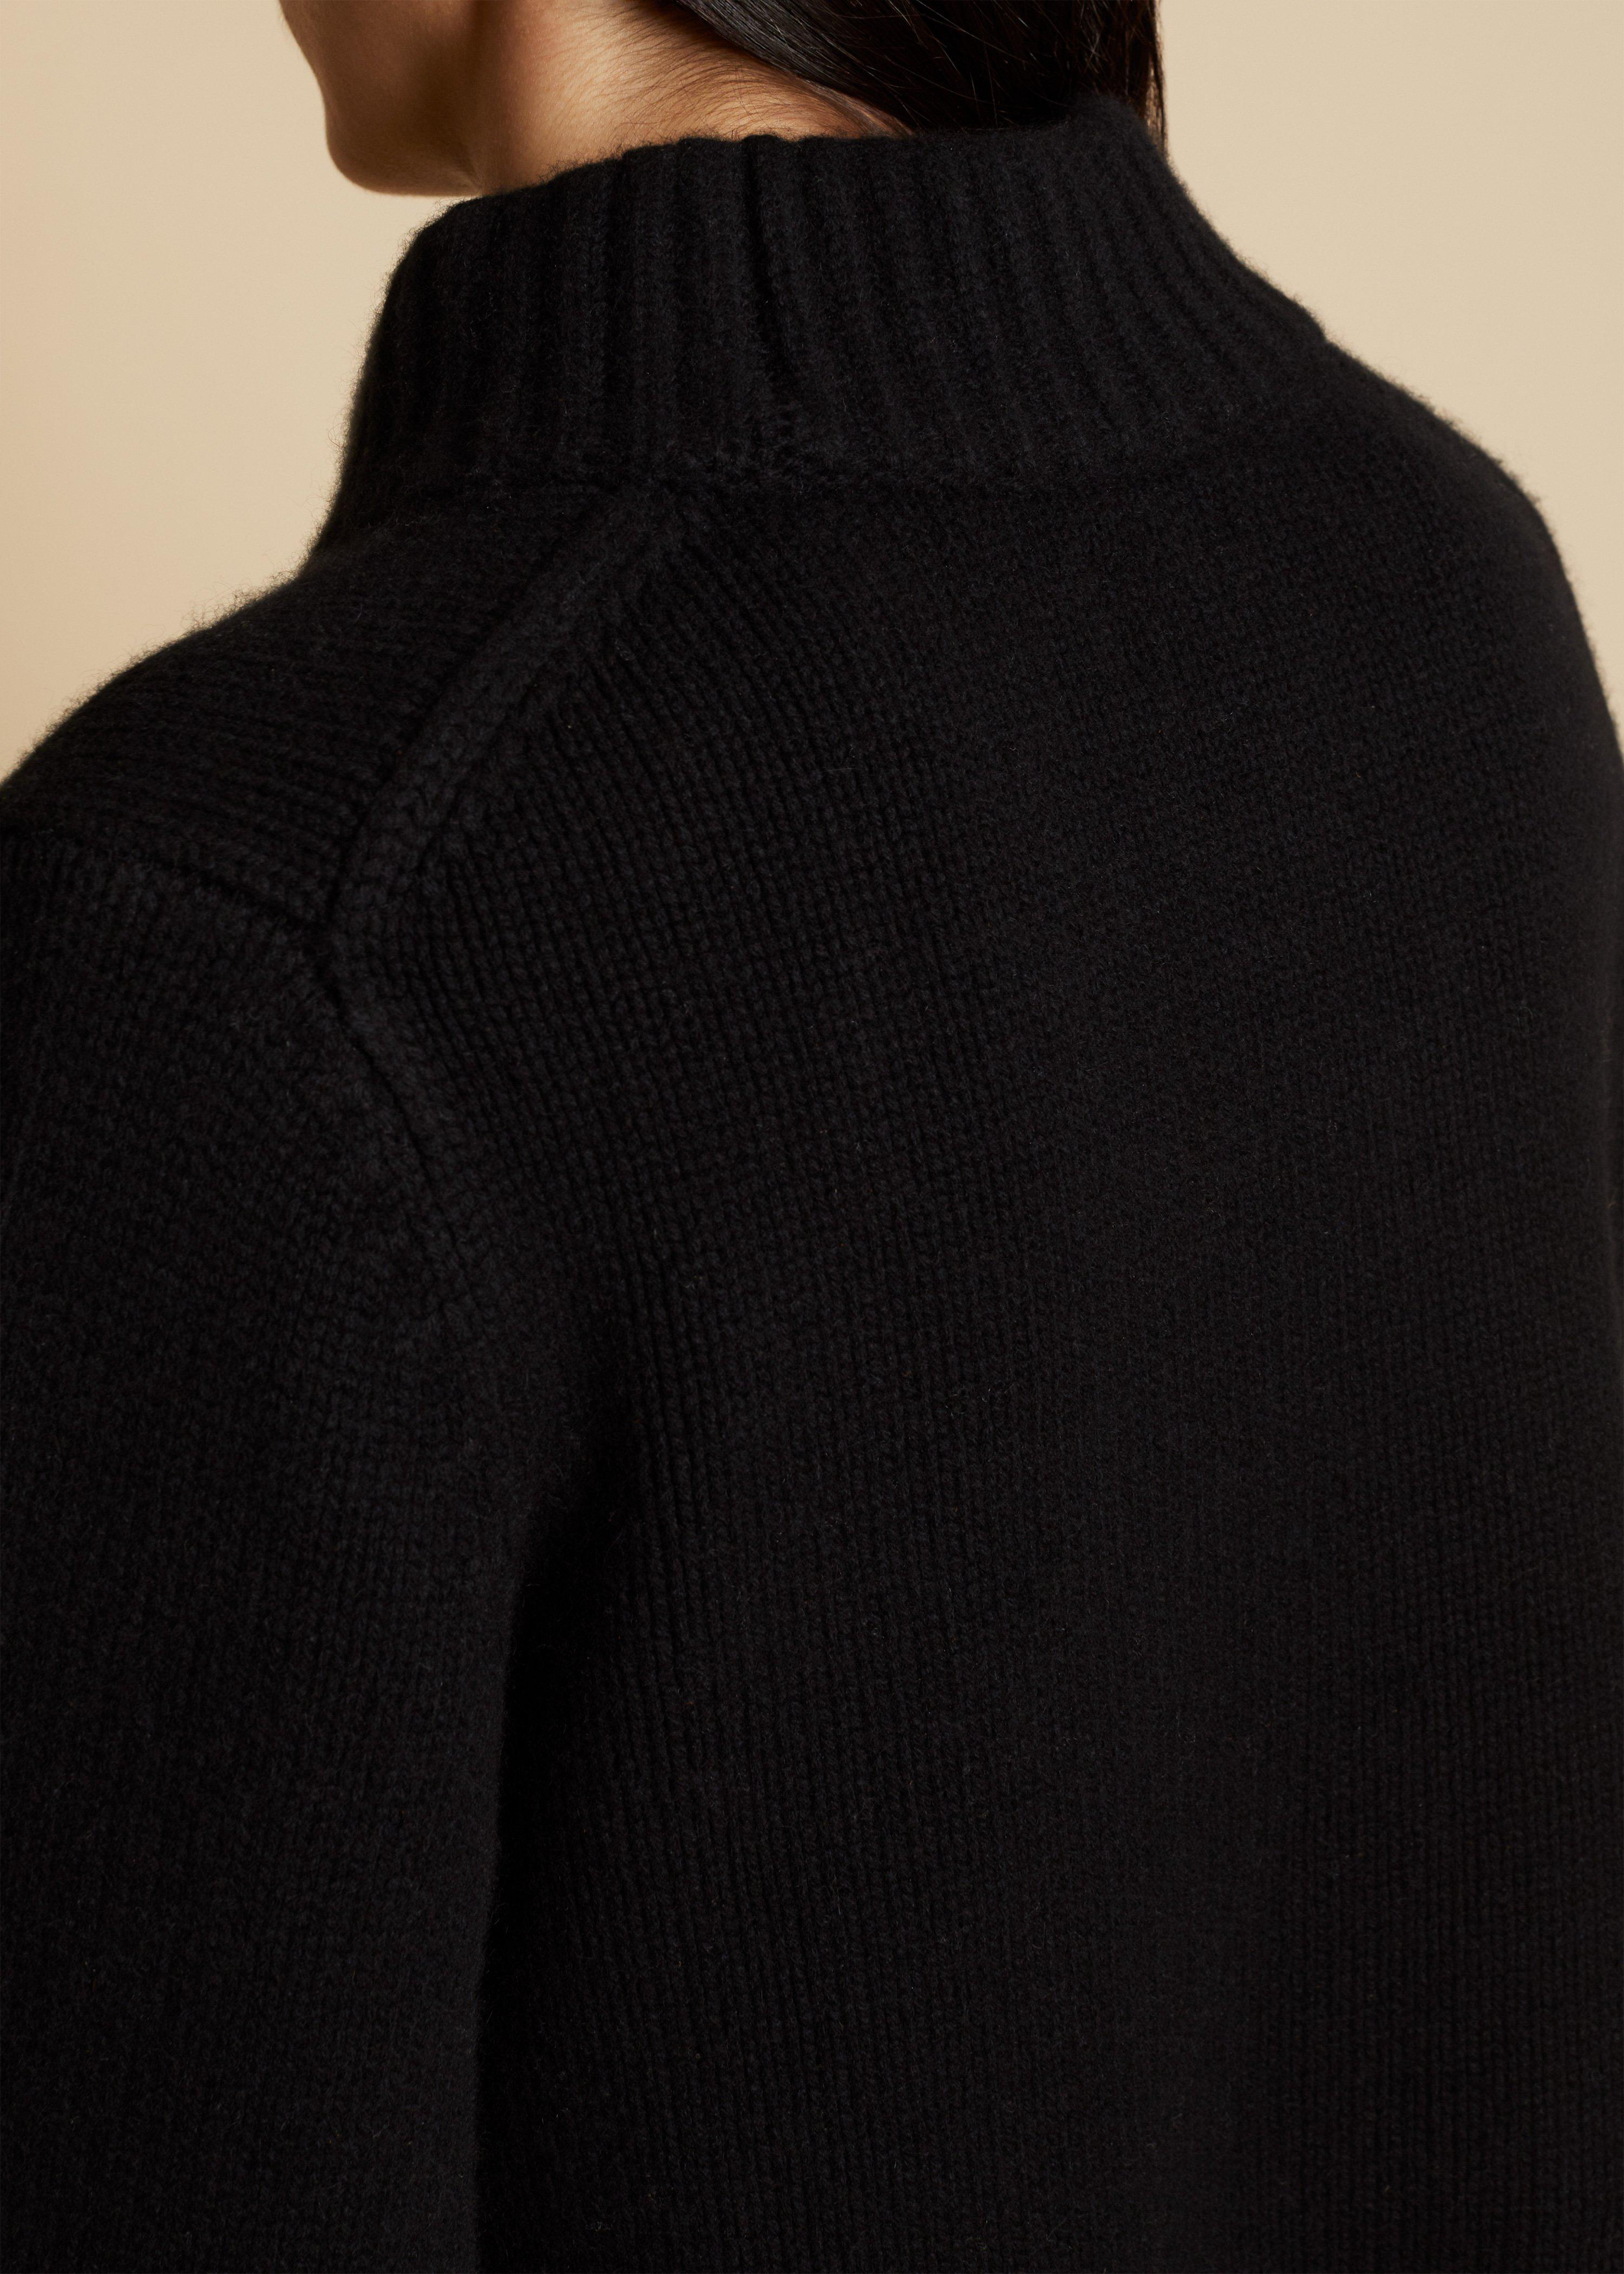 The Lima Sweater in Black 3